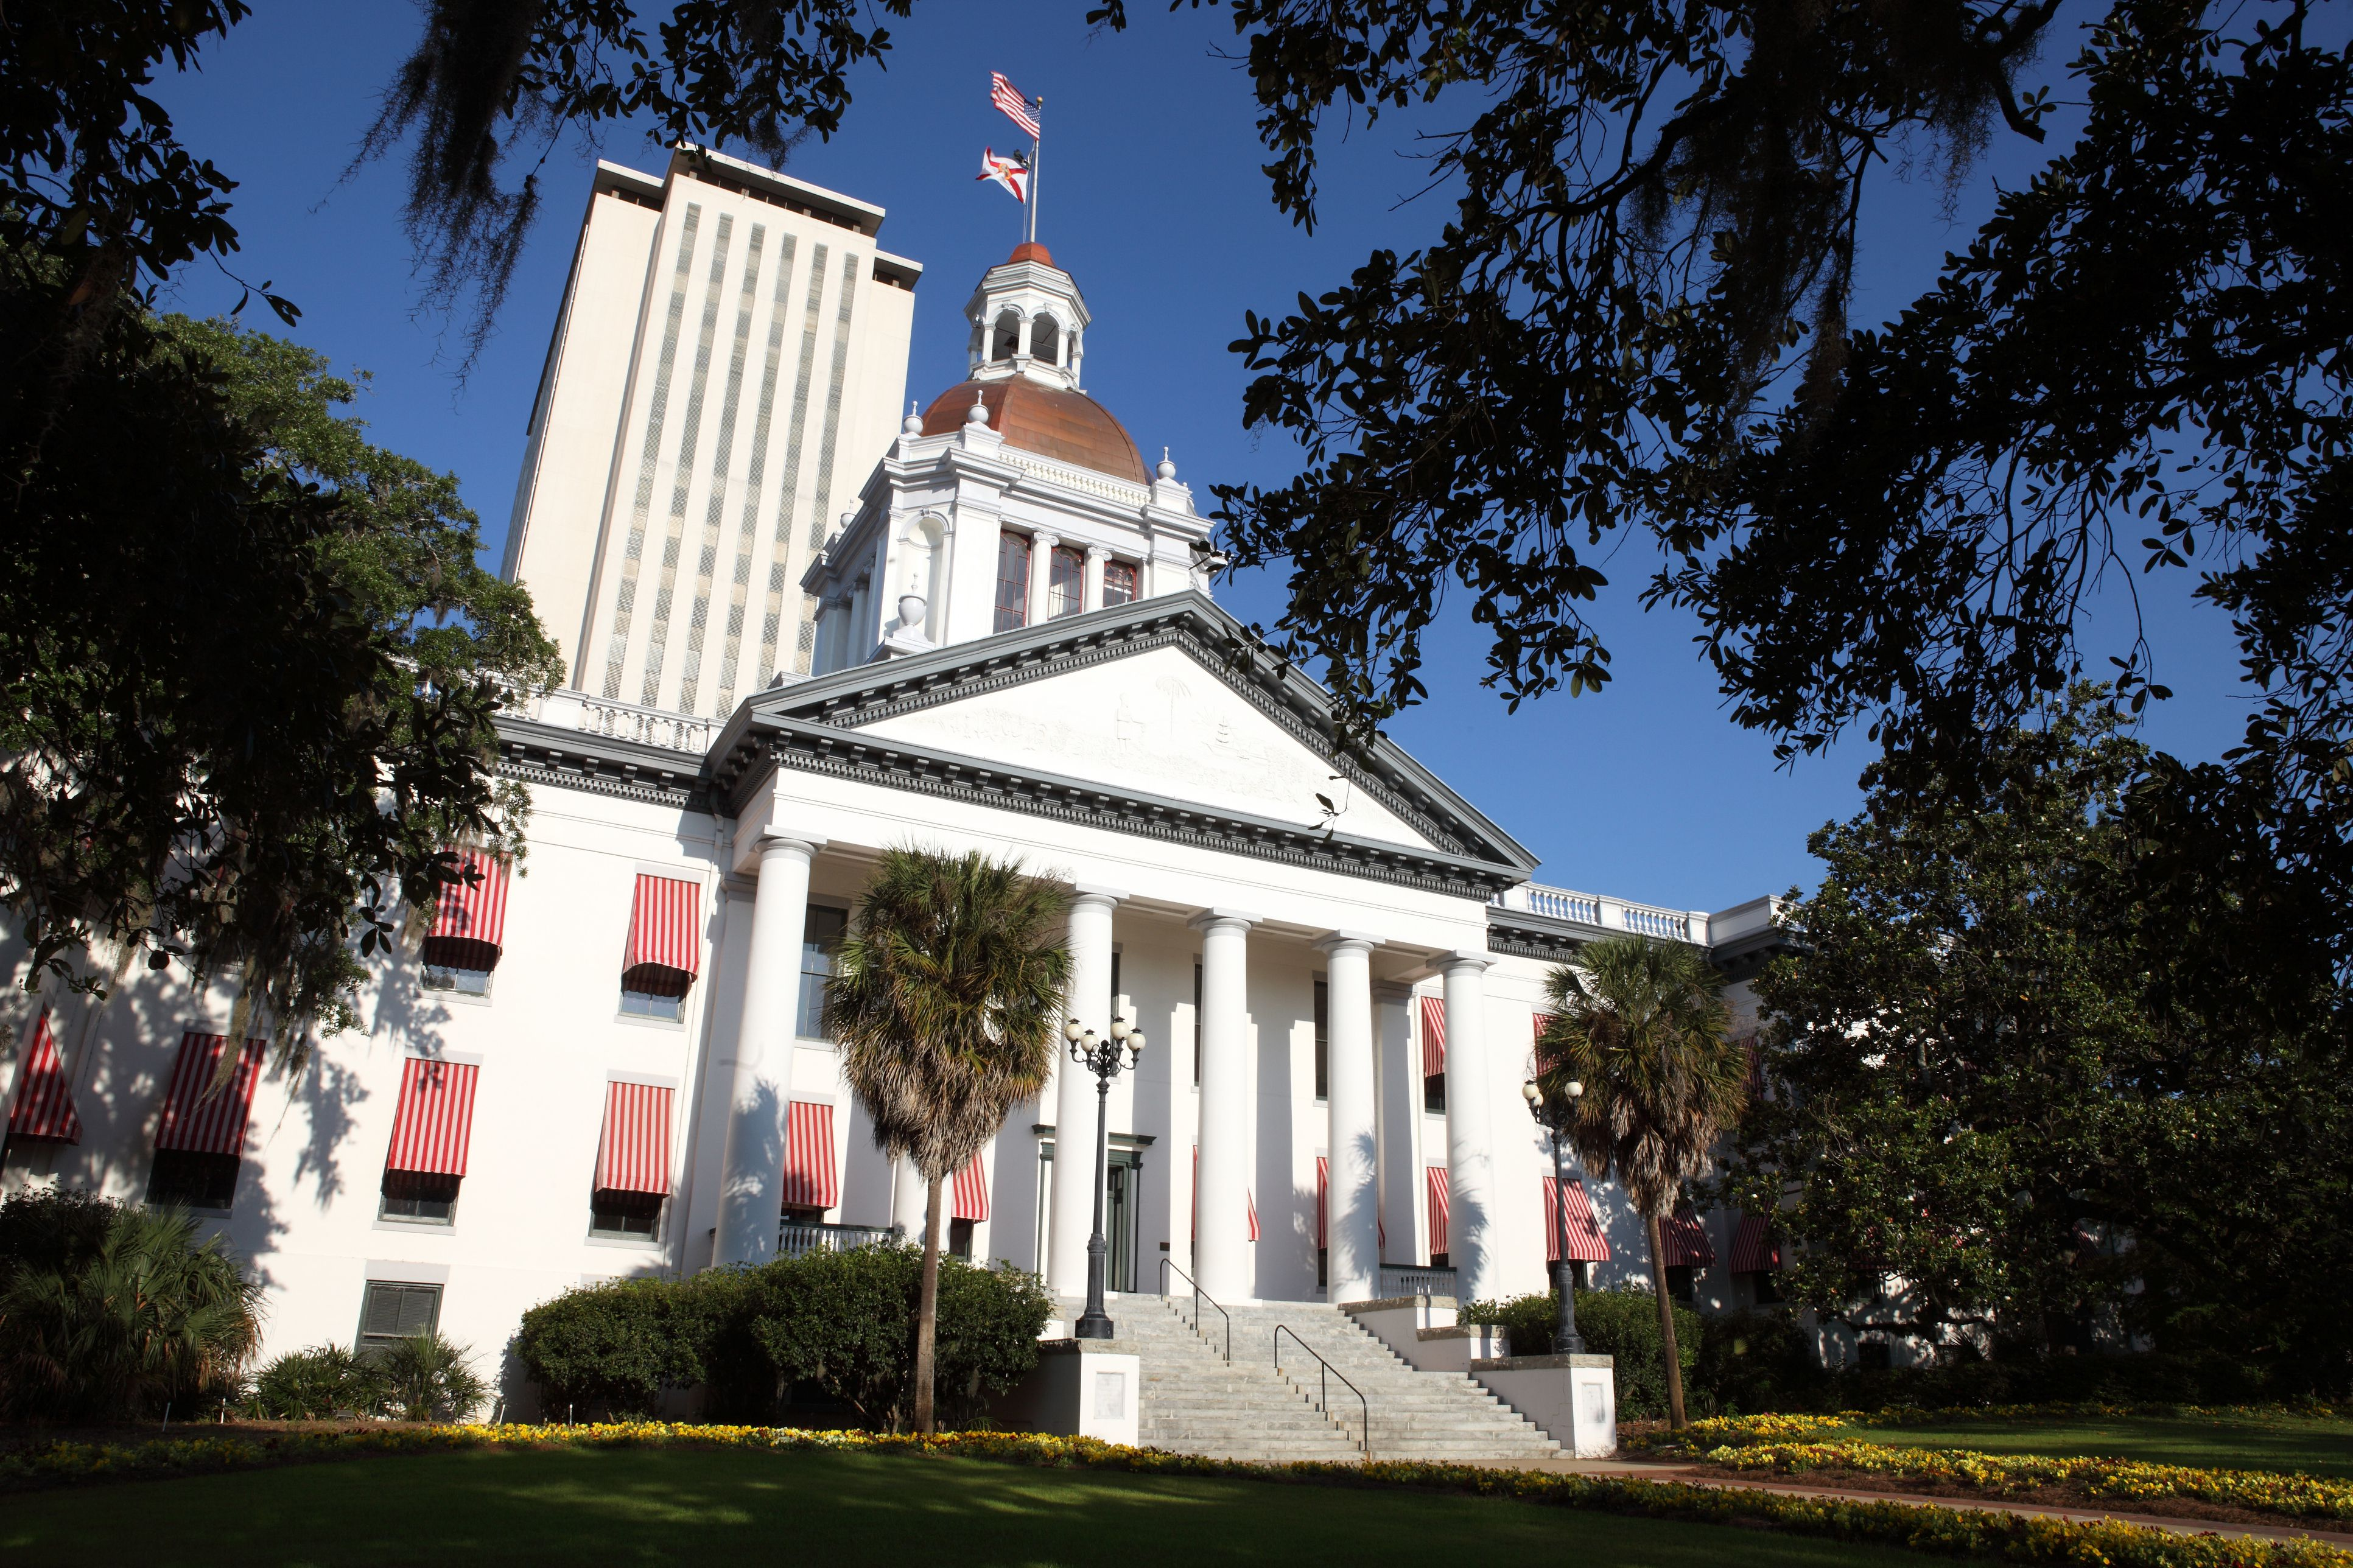 Florida Old State Capitol